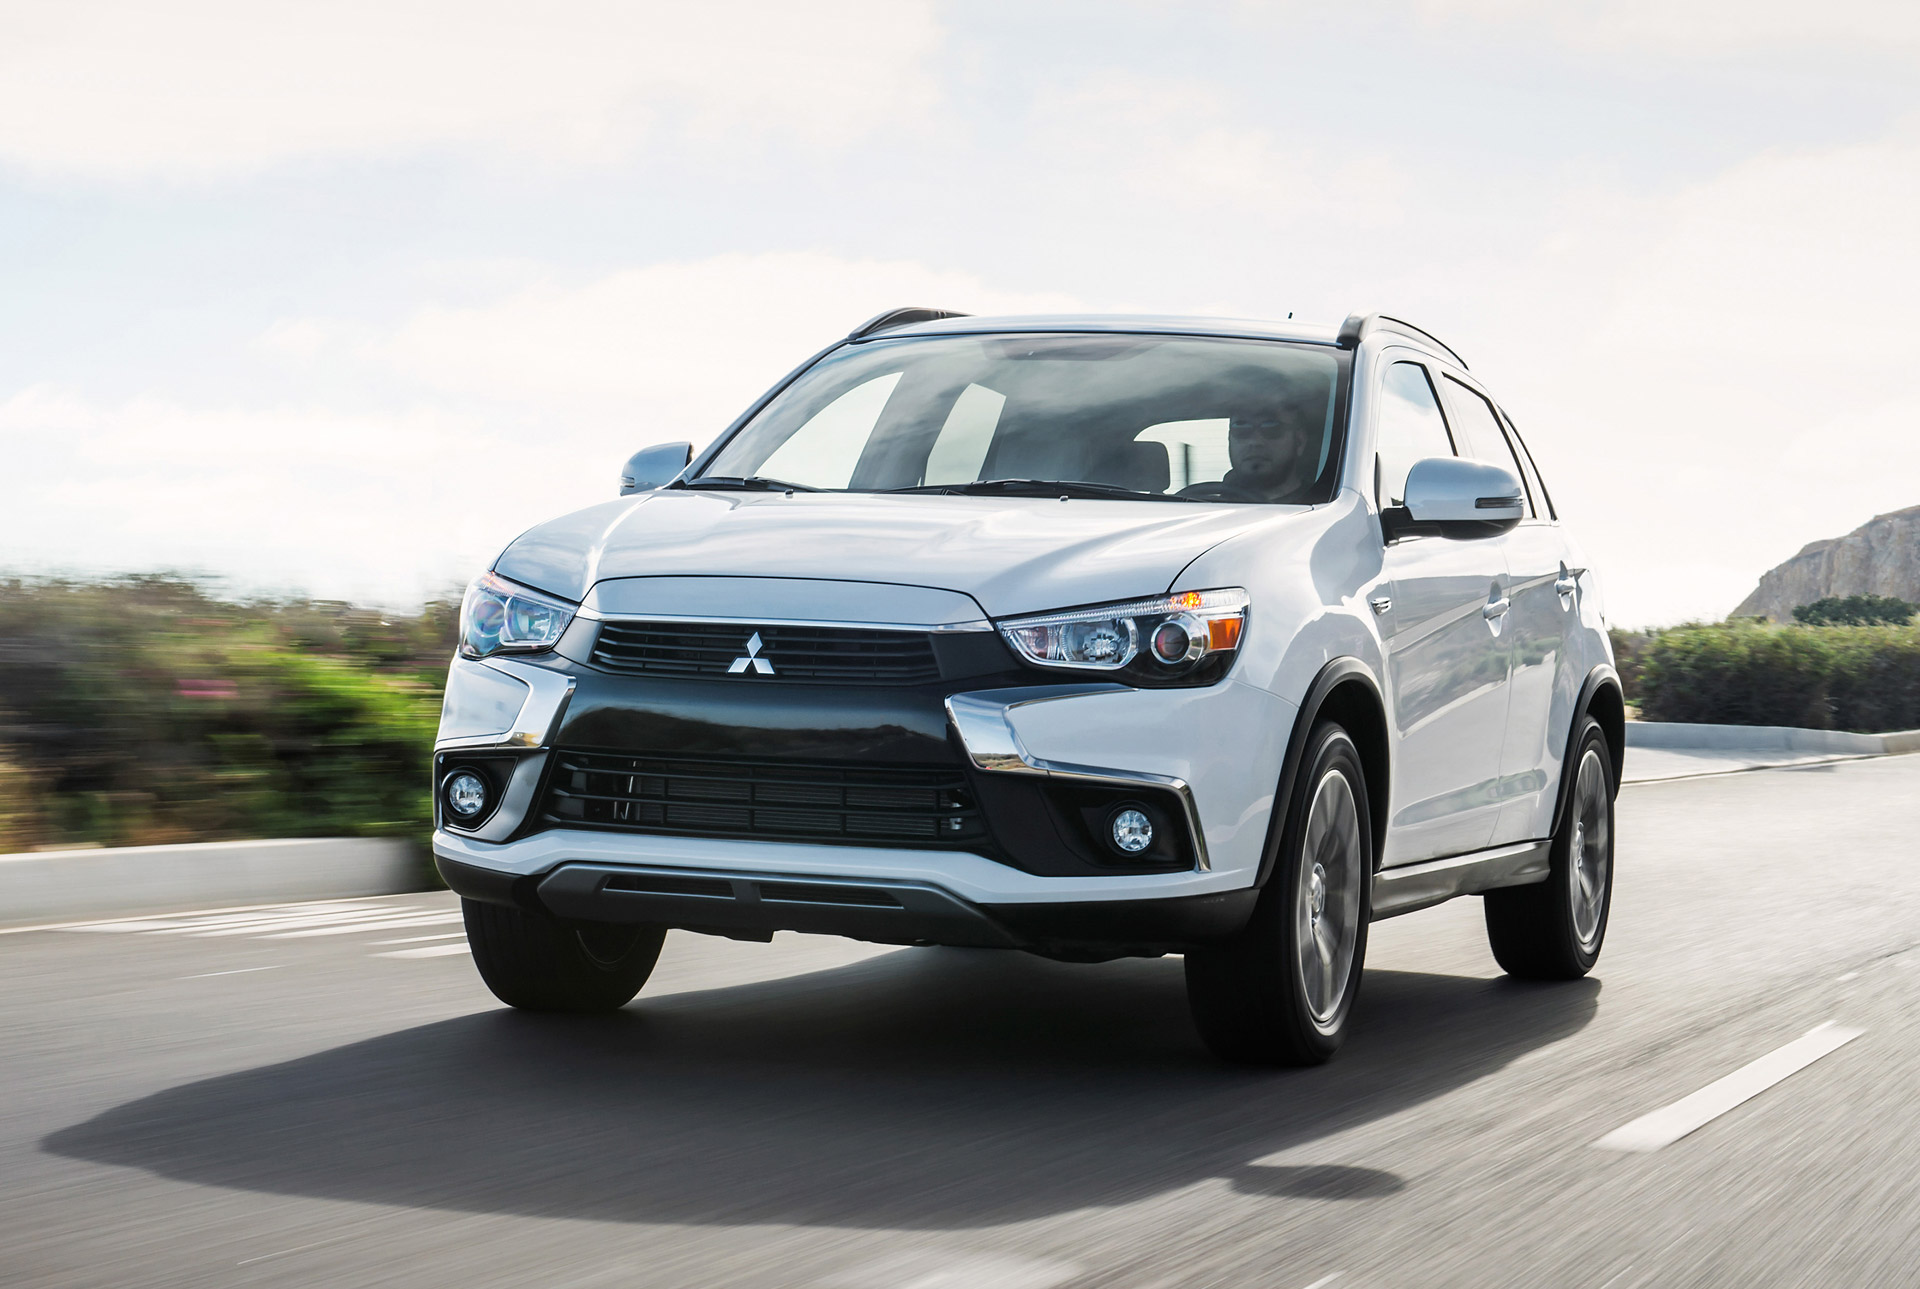 2016 Mitsubishi Outlander Review, Ratings, Specs, Prices, and Photos - The Car Connection